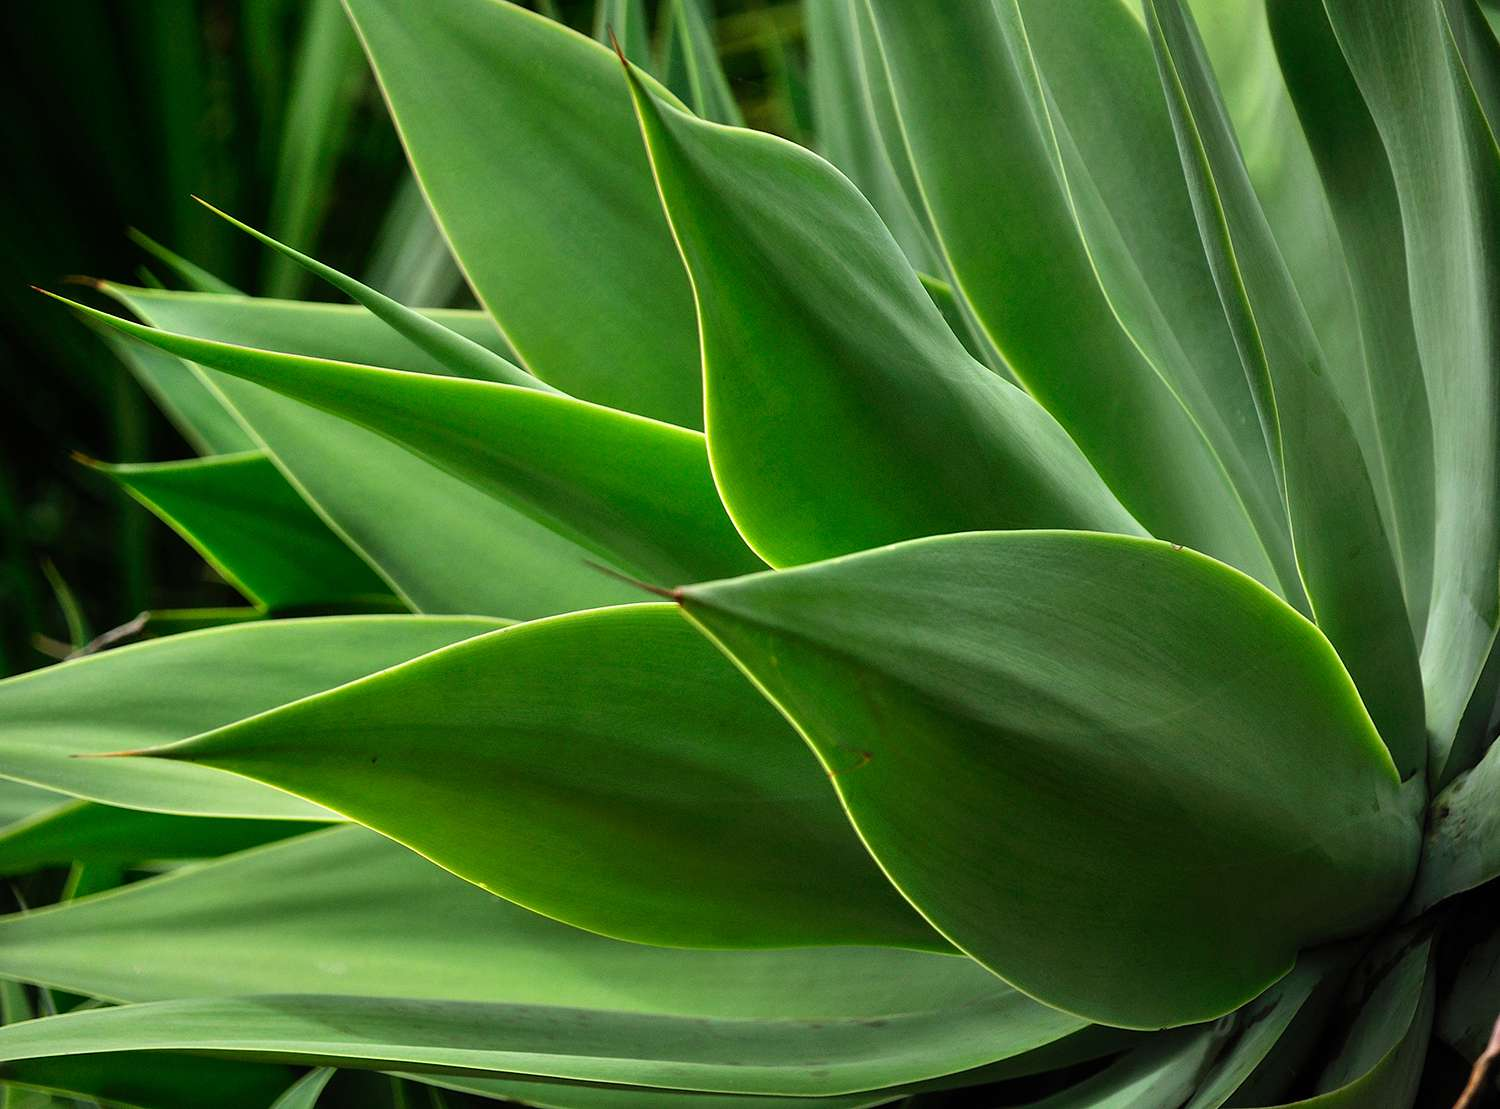 Close up of leaves of agave plant